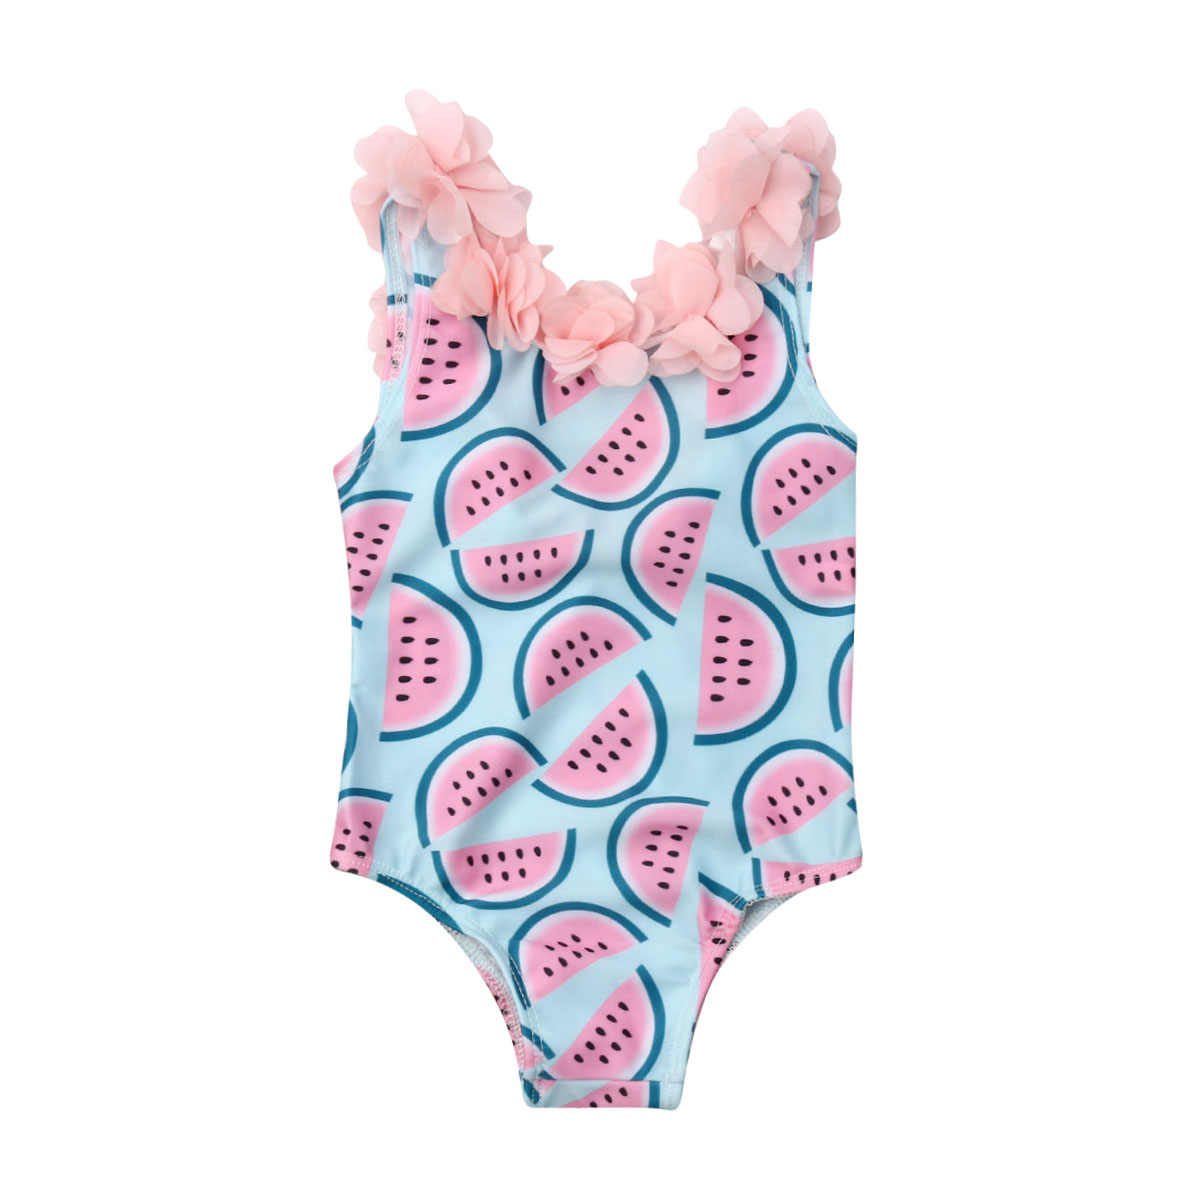 Ambabe Toddler Infant Baby Girl One-Piece Swimsuit Fly Sleeve Leopard Printed Swimwear Summer Beach Bathing Suit